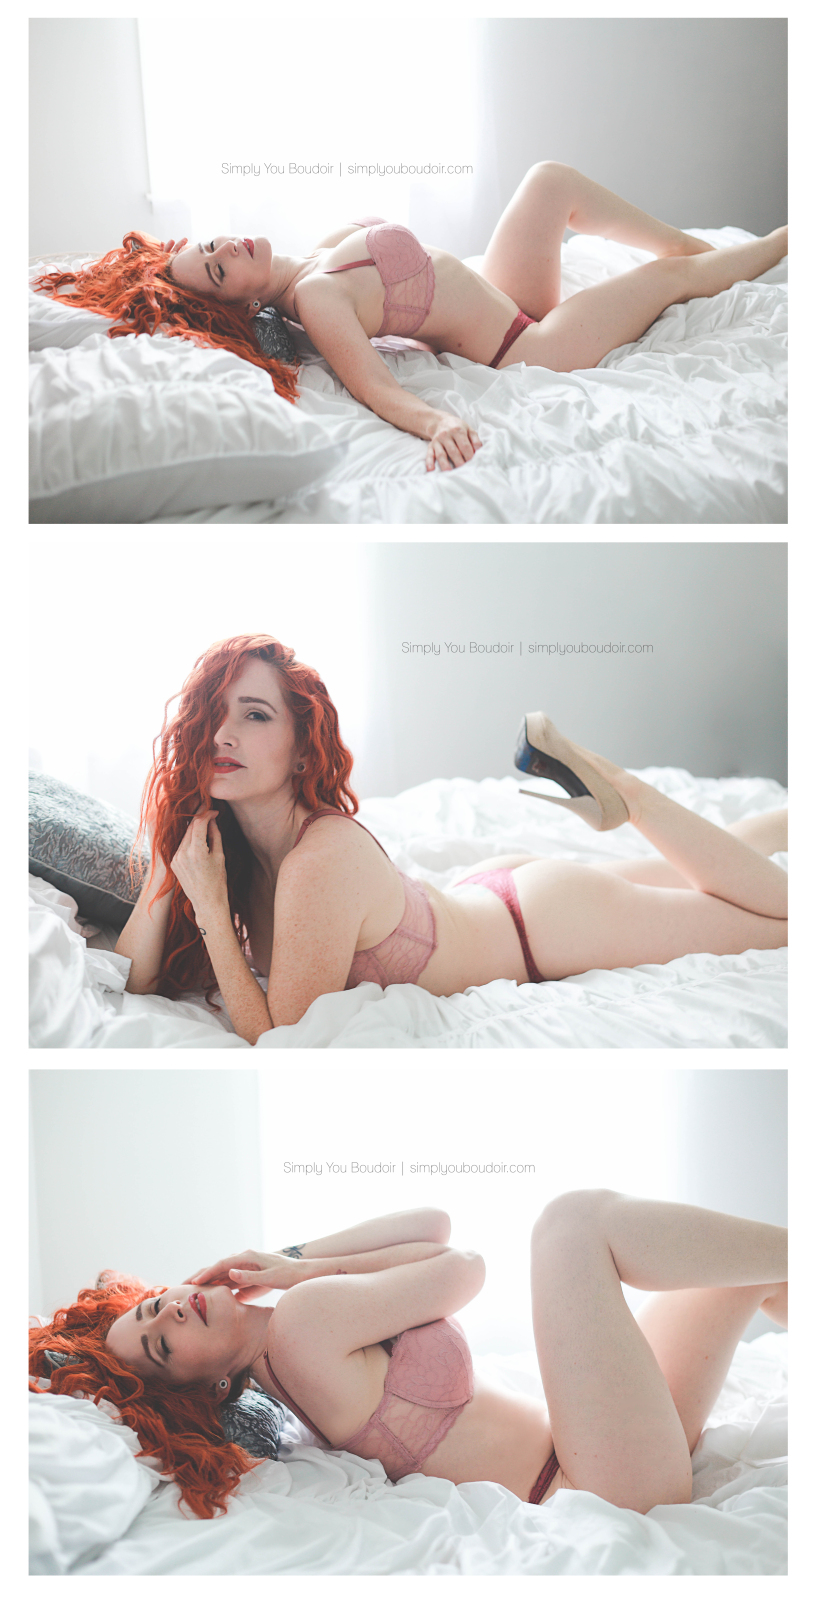 Simply You Boudoir  simplyouboudoir.com